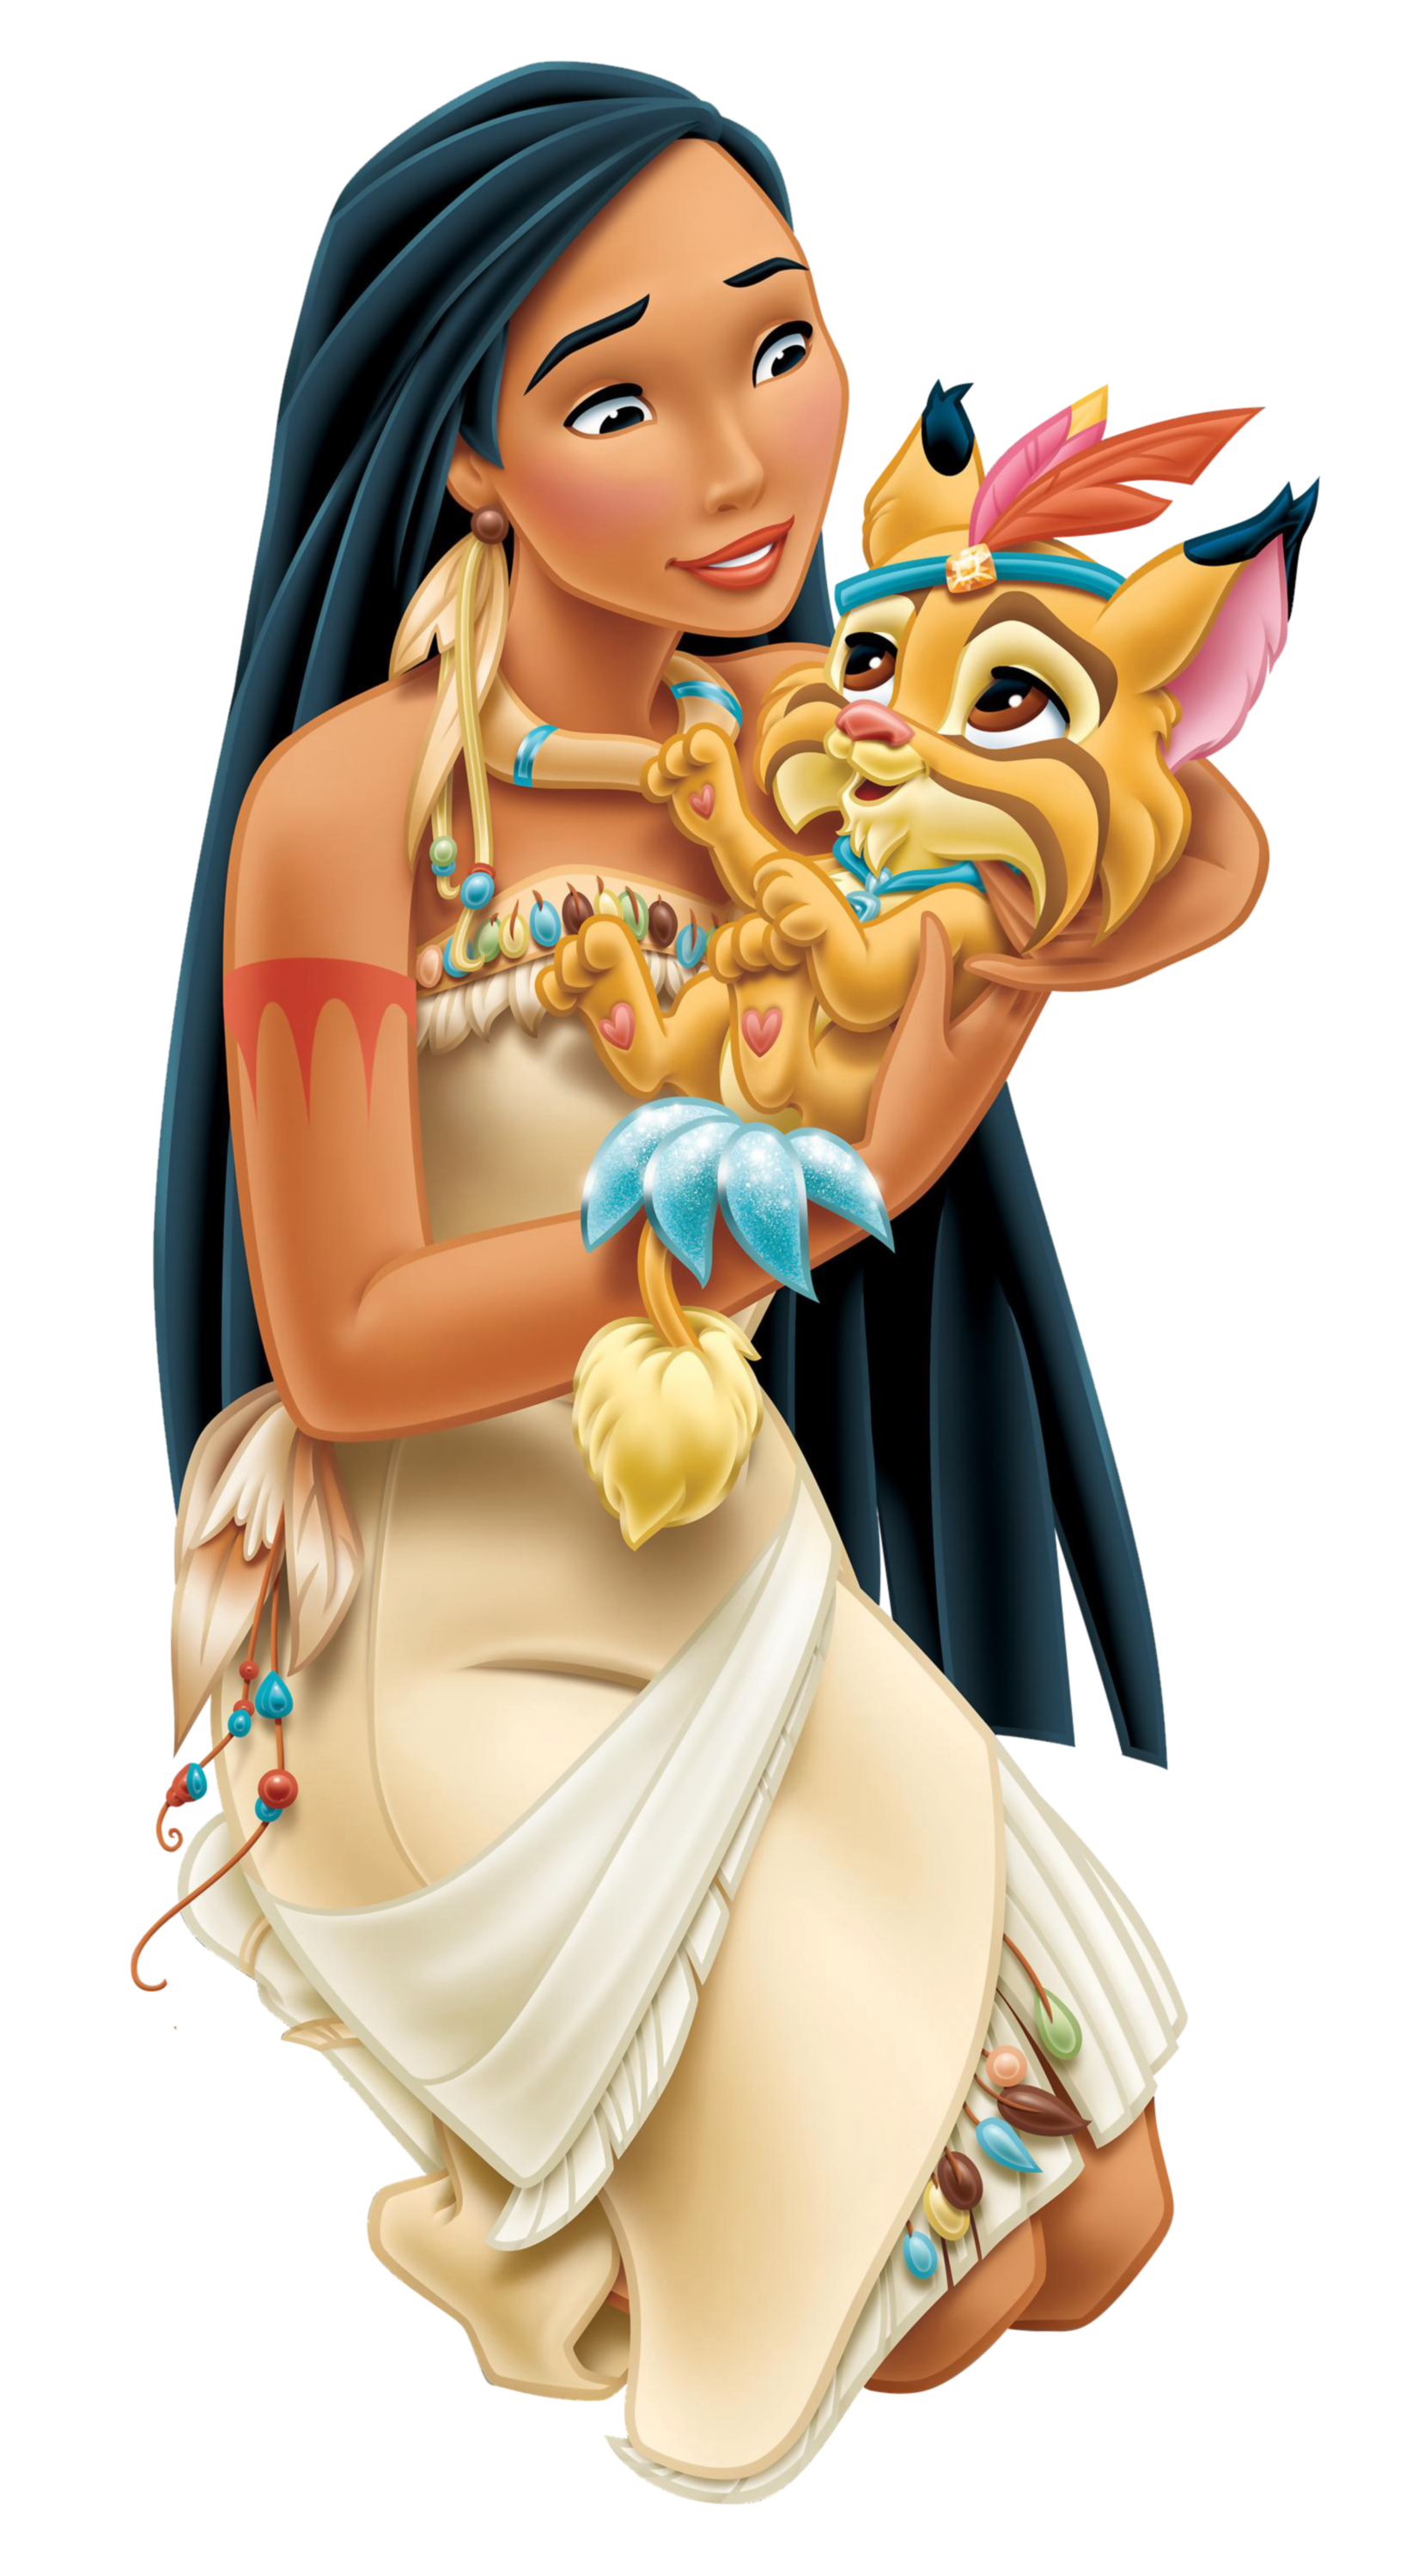 Disney Princess Pocahontas With Little Tiger Transparent PNG Clip Art Image - Pocahontas PNG HD